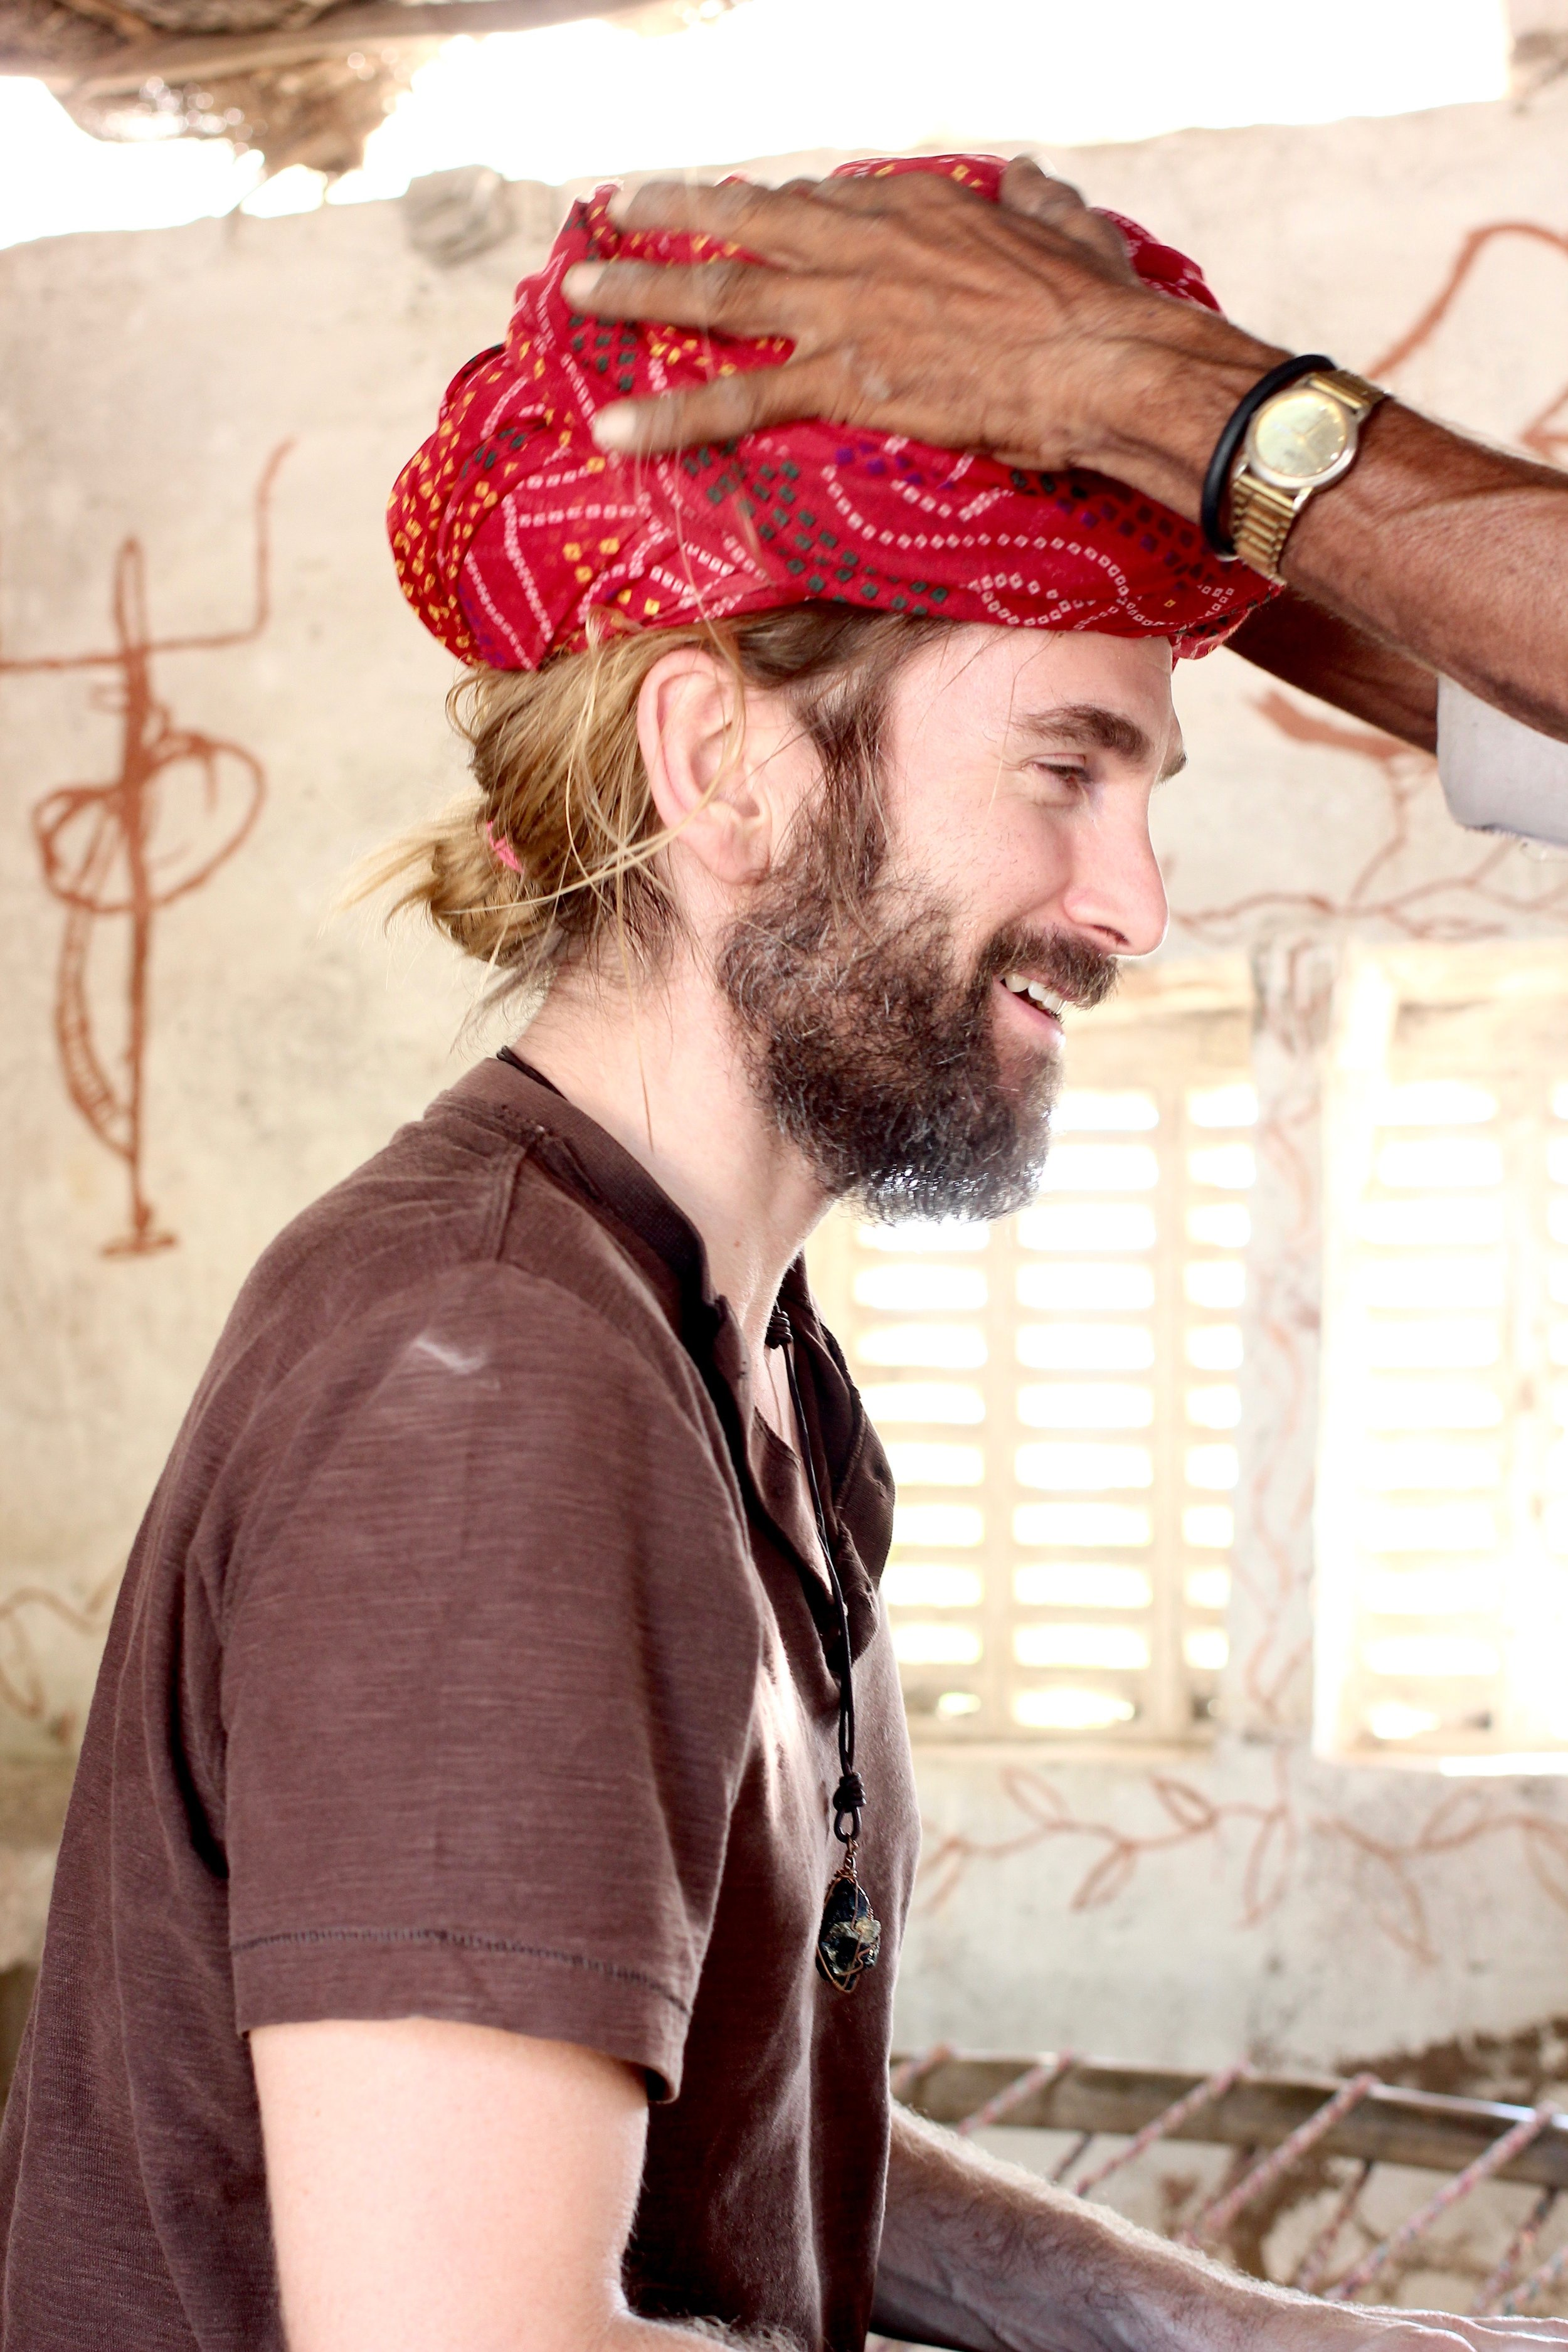 Wylie received a turban, my personal highlight (looks like it's his too).